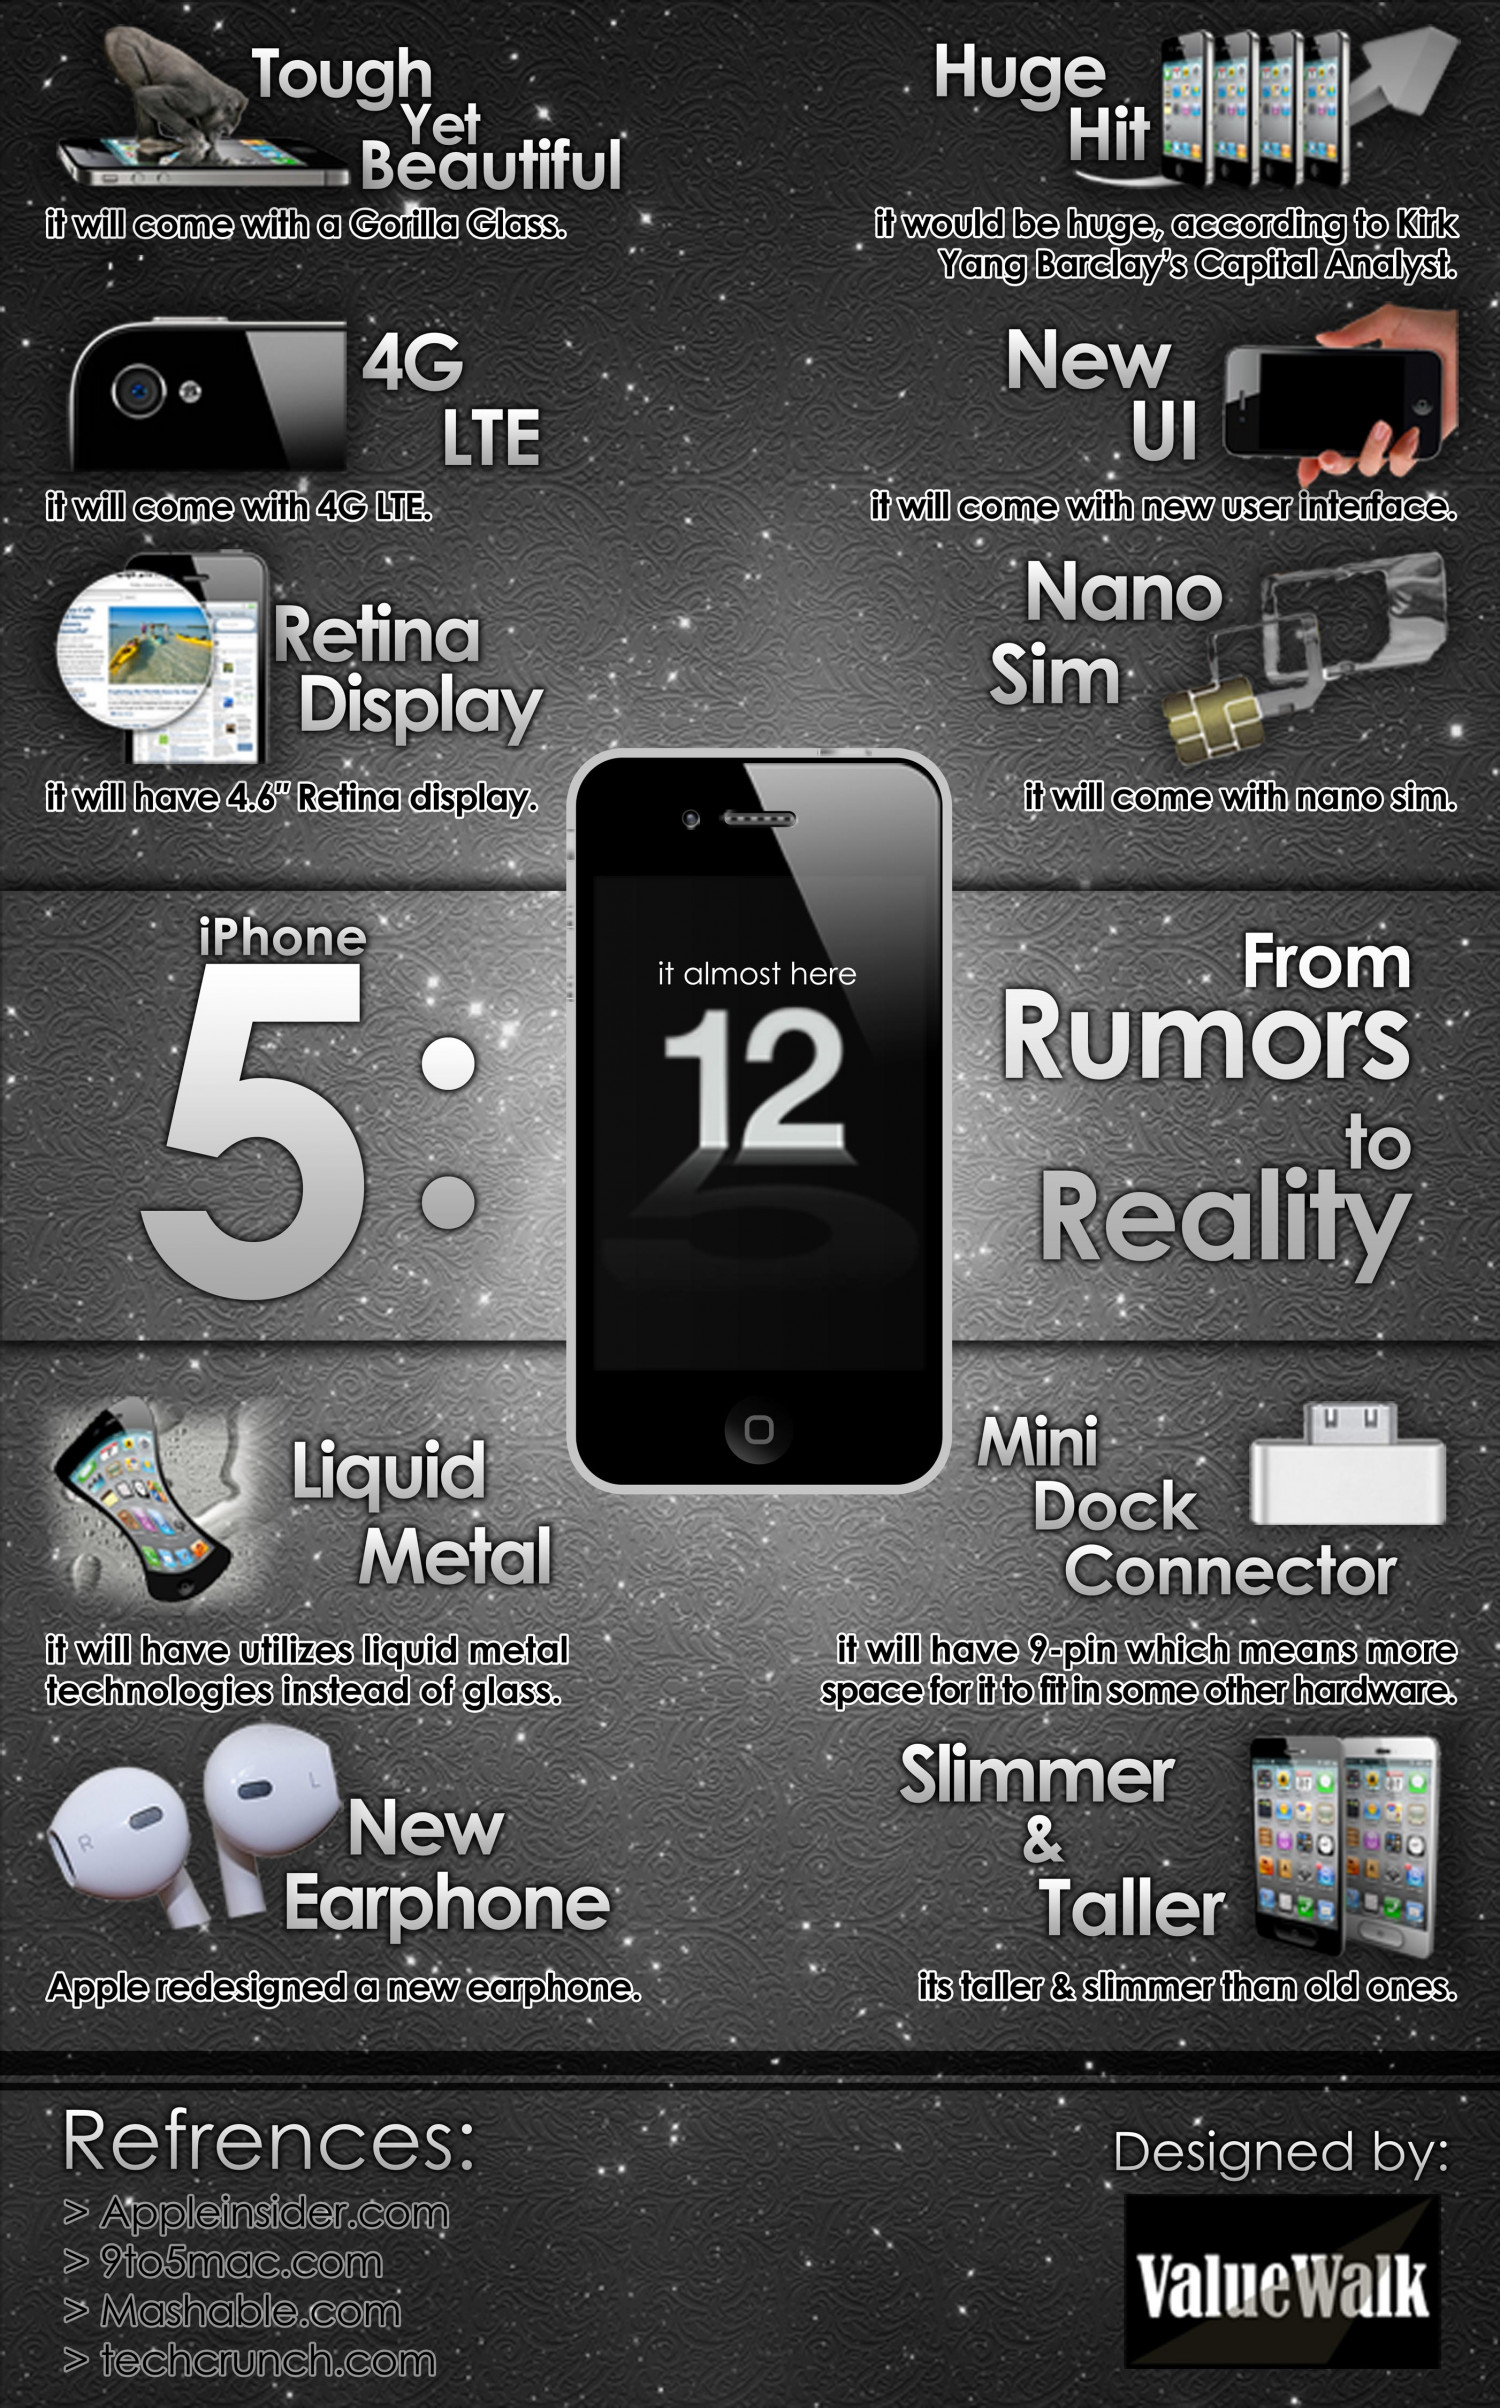 iPhone 5: From Rumors To Reality Infographic